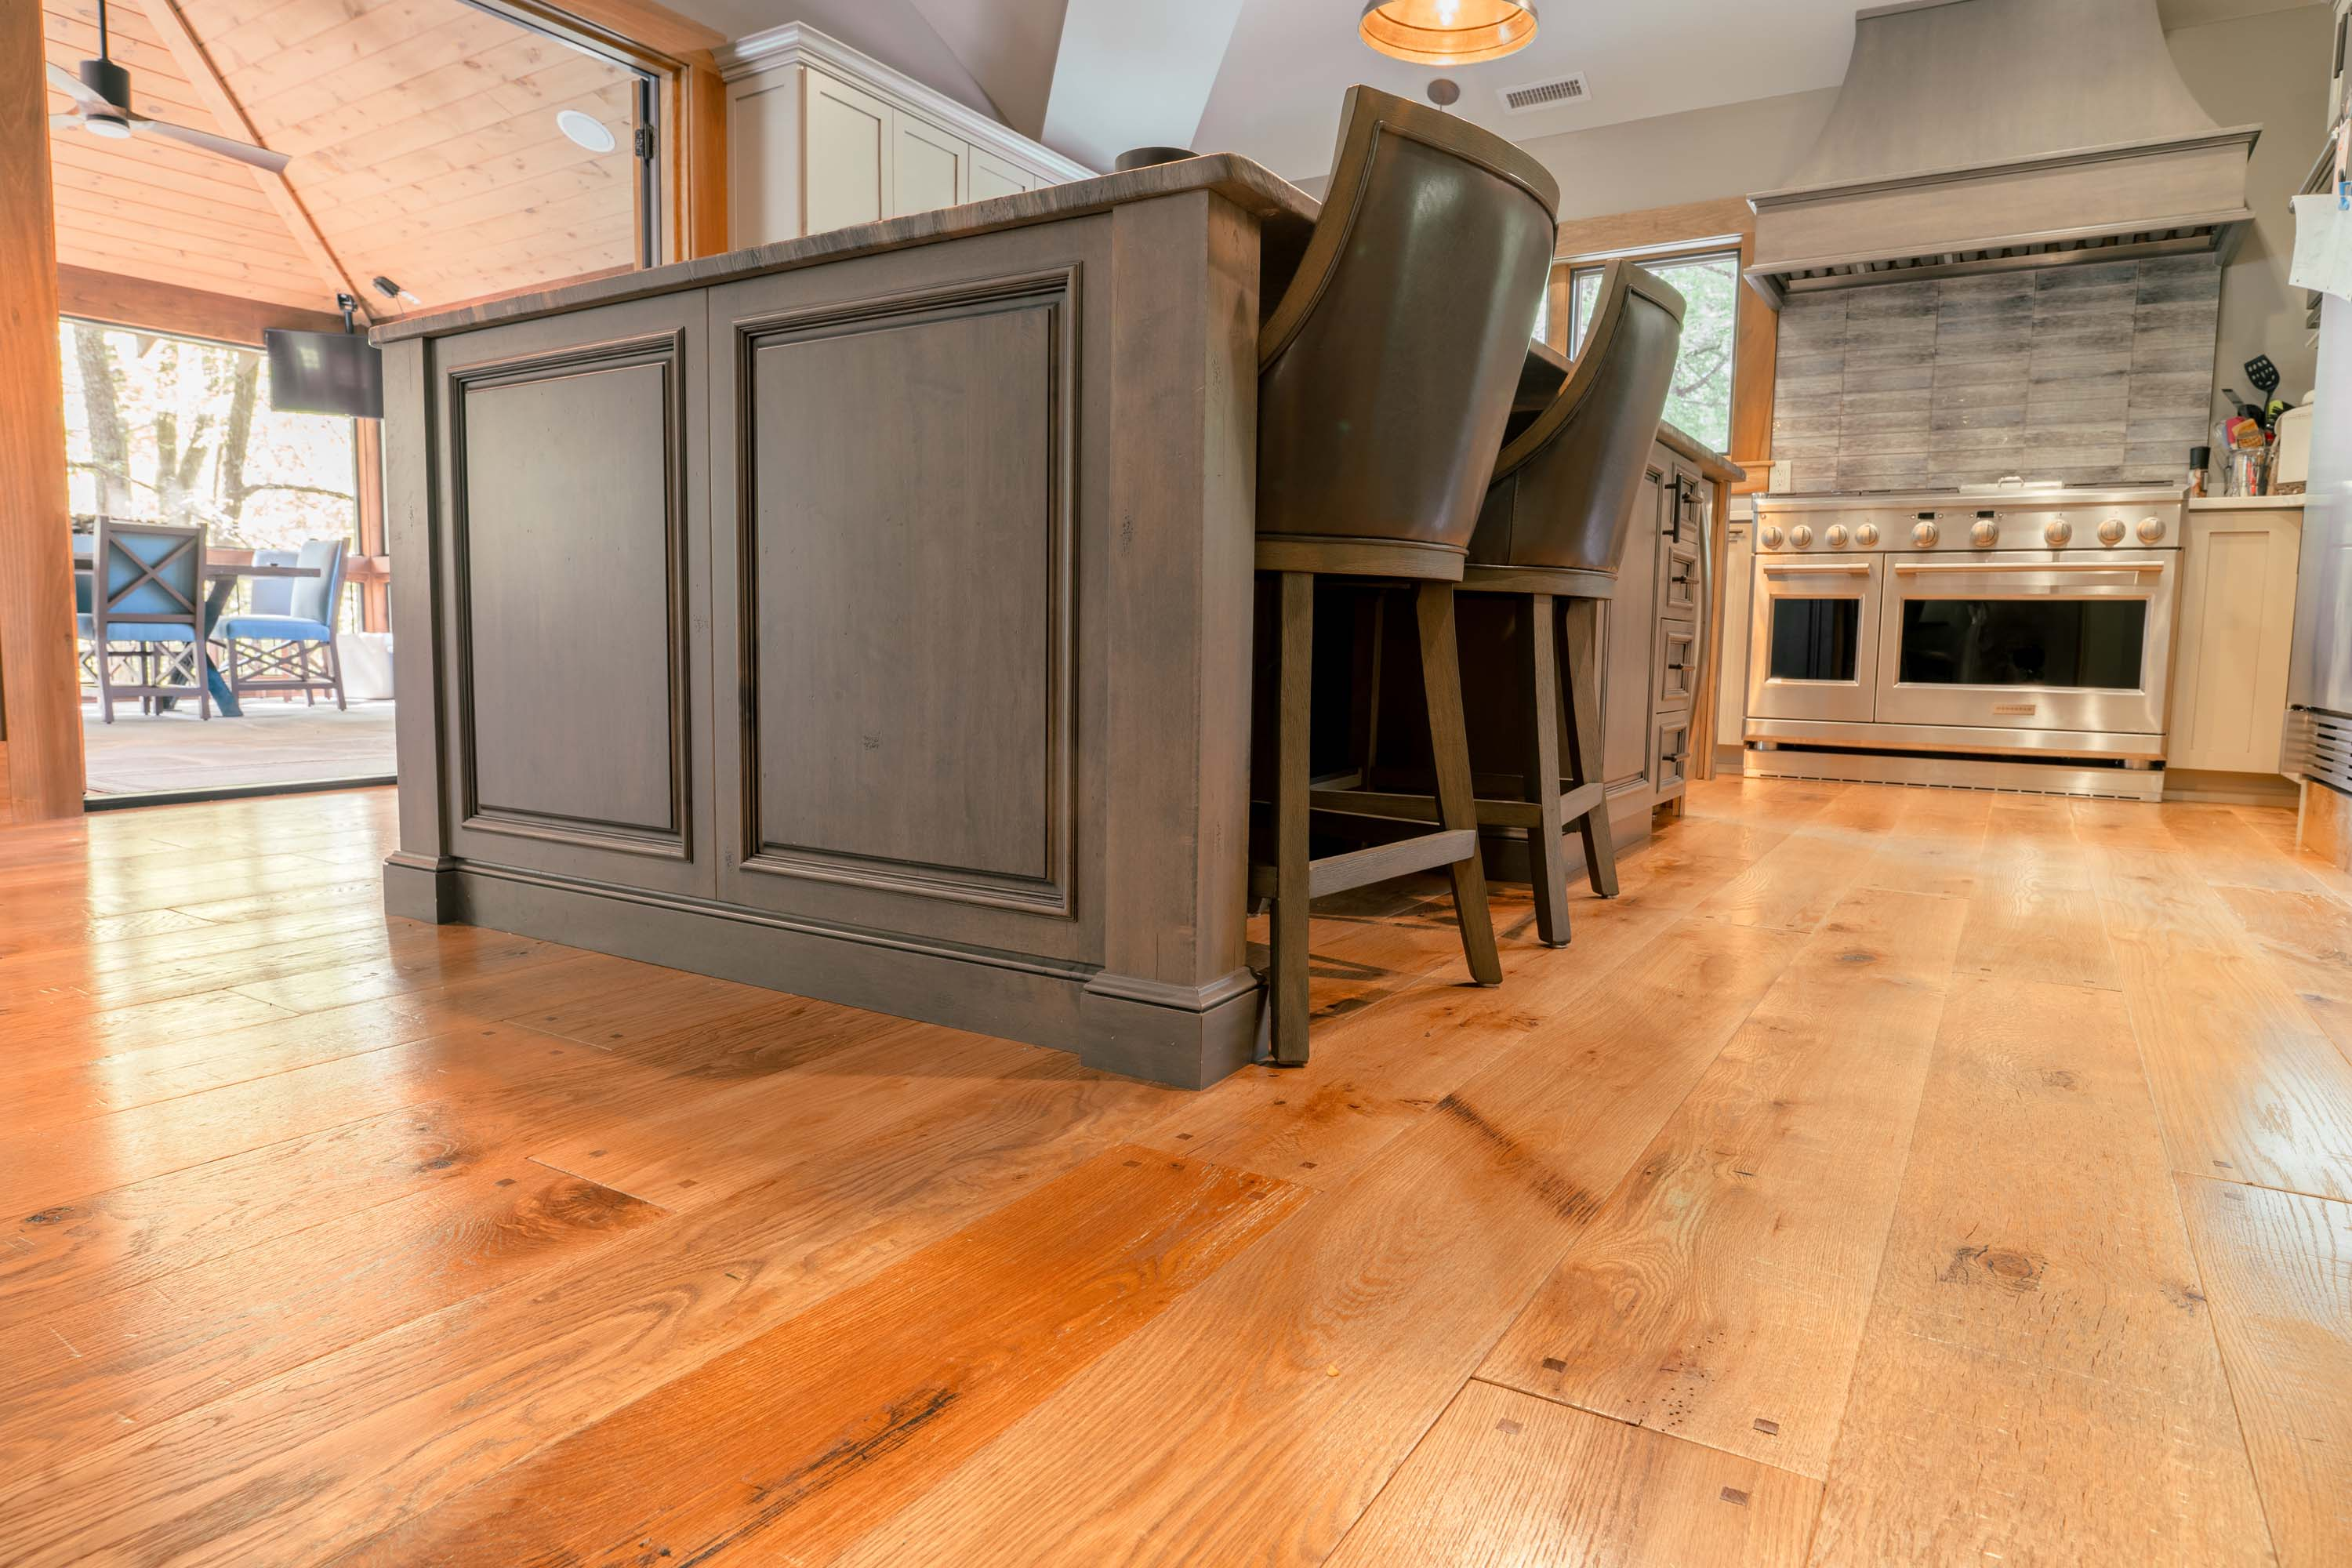 a kitchen with Montana Plank Reclaimed Wood Flooring by Tennessee Wood Flooring. Our Reclaimed Wood Floors are gathered and made in the hills of sevierville, tennessee.